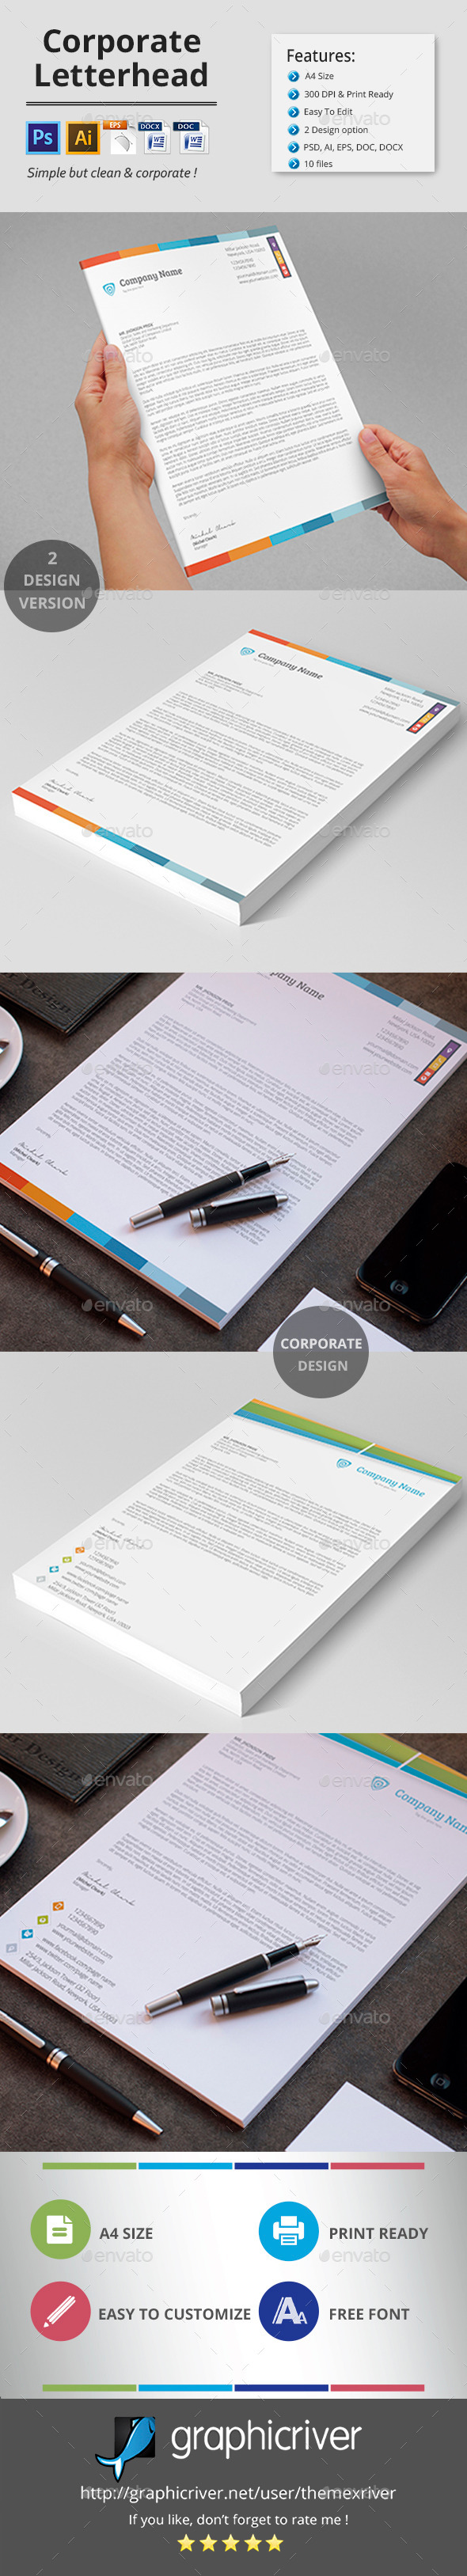 GraphicRiver Corporate Letterhead 11416459